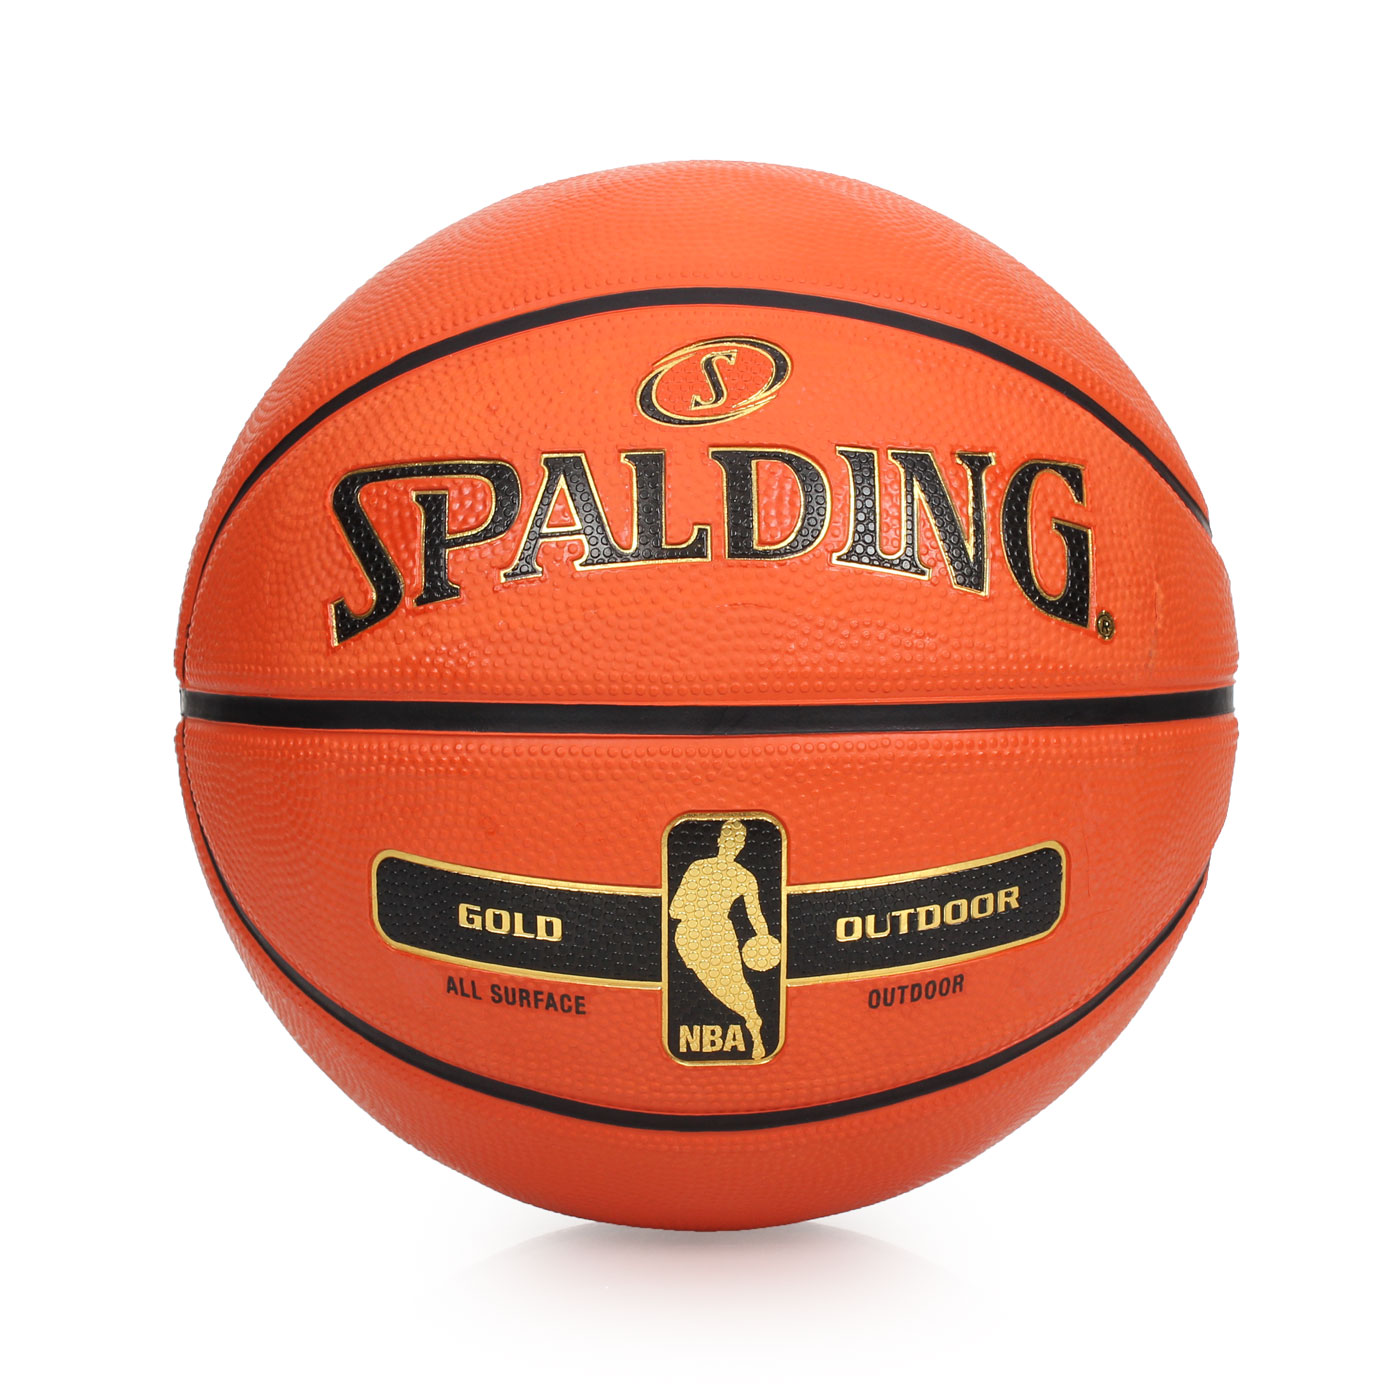 SPALDING 金色NBA-Rubber 籃球 SPA83492